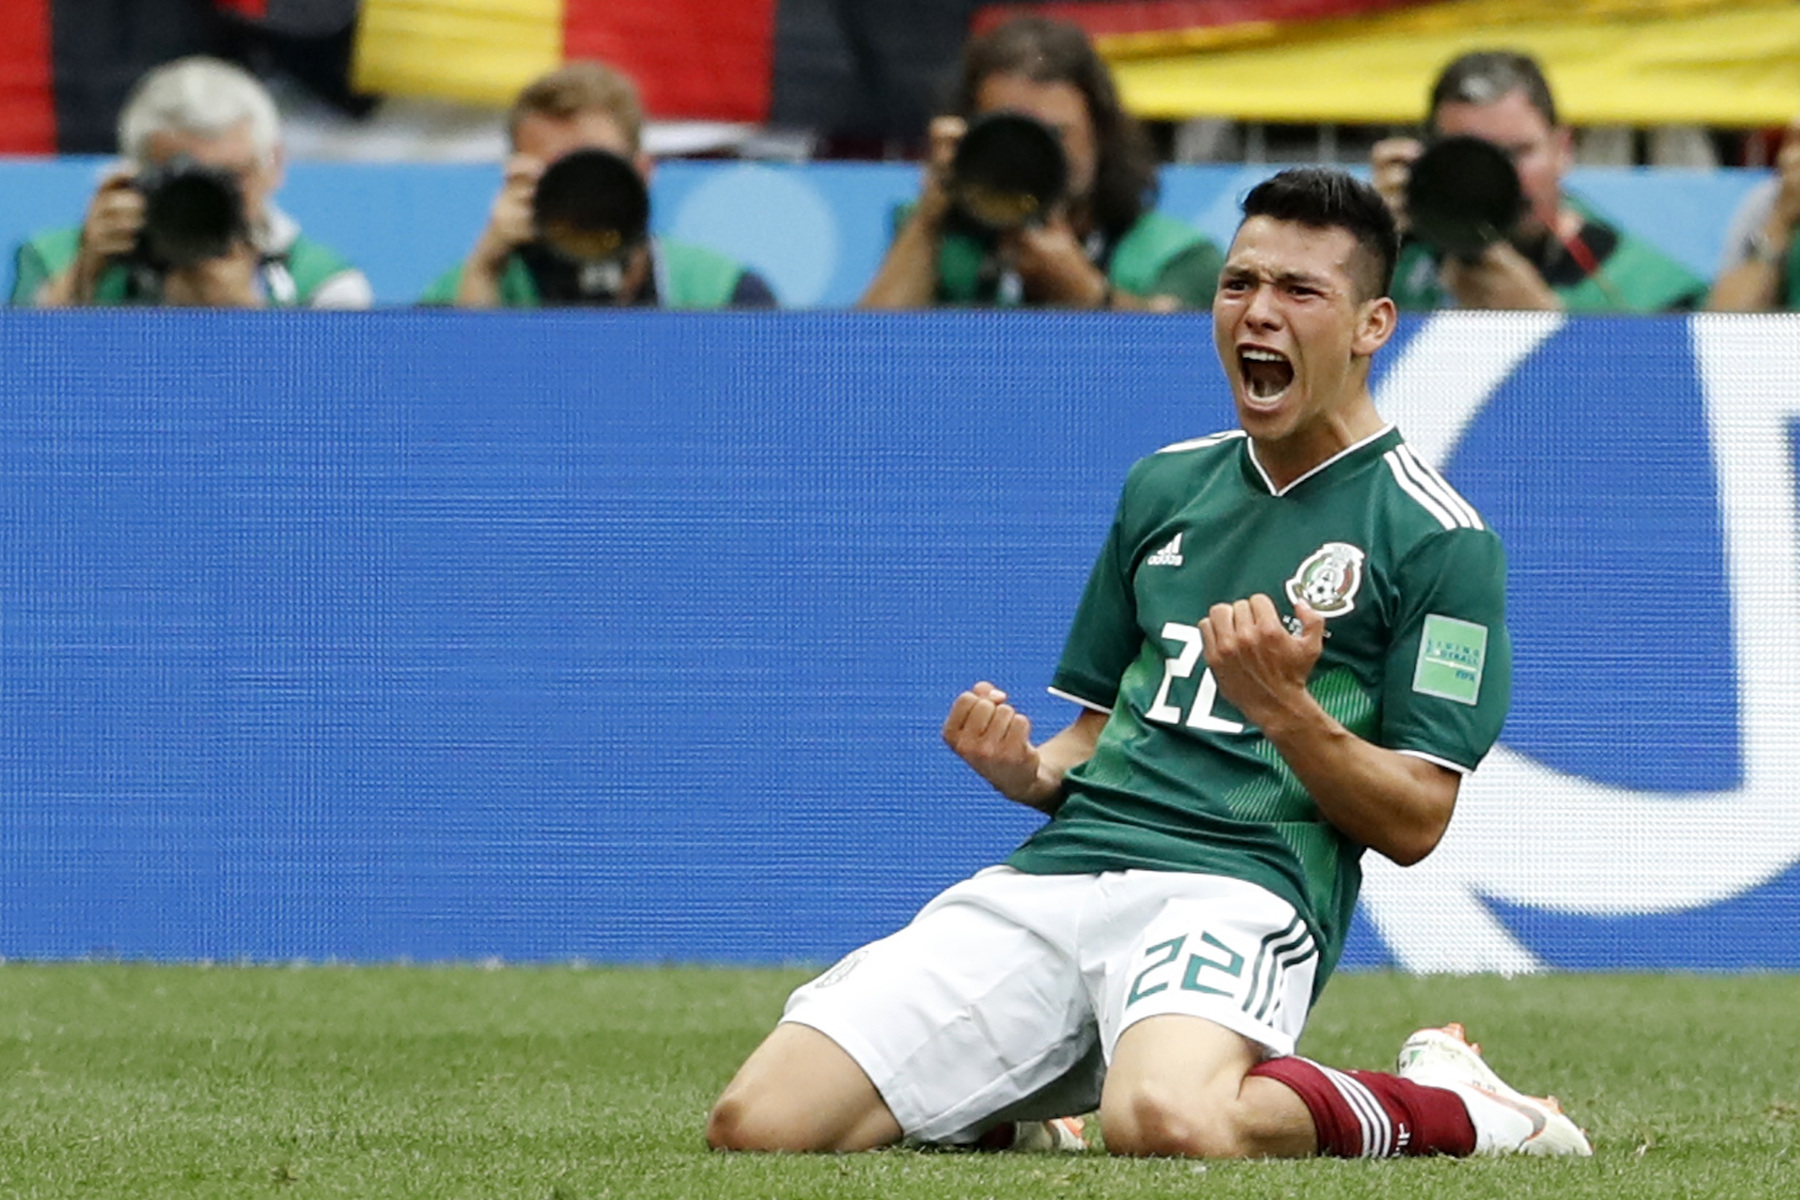 <div class='meta'><div class='origin-logo' data-origin='AP'></div><span class='caption-text' data-credit='AP Photo/Antonio Calanni'>Mexico's Hirving Lozano, celebrates scoring his side's opening goal during the group F match between Germany and Mexico at the 2018 soccer World Cup in the Luzhniki Stadium.</span></div>